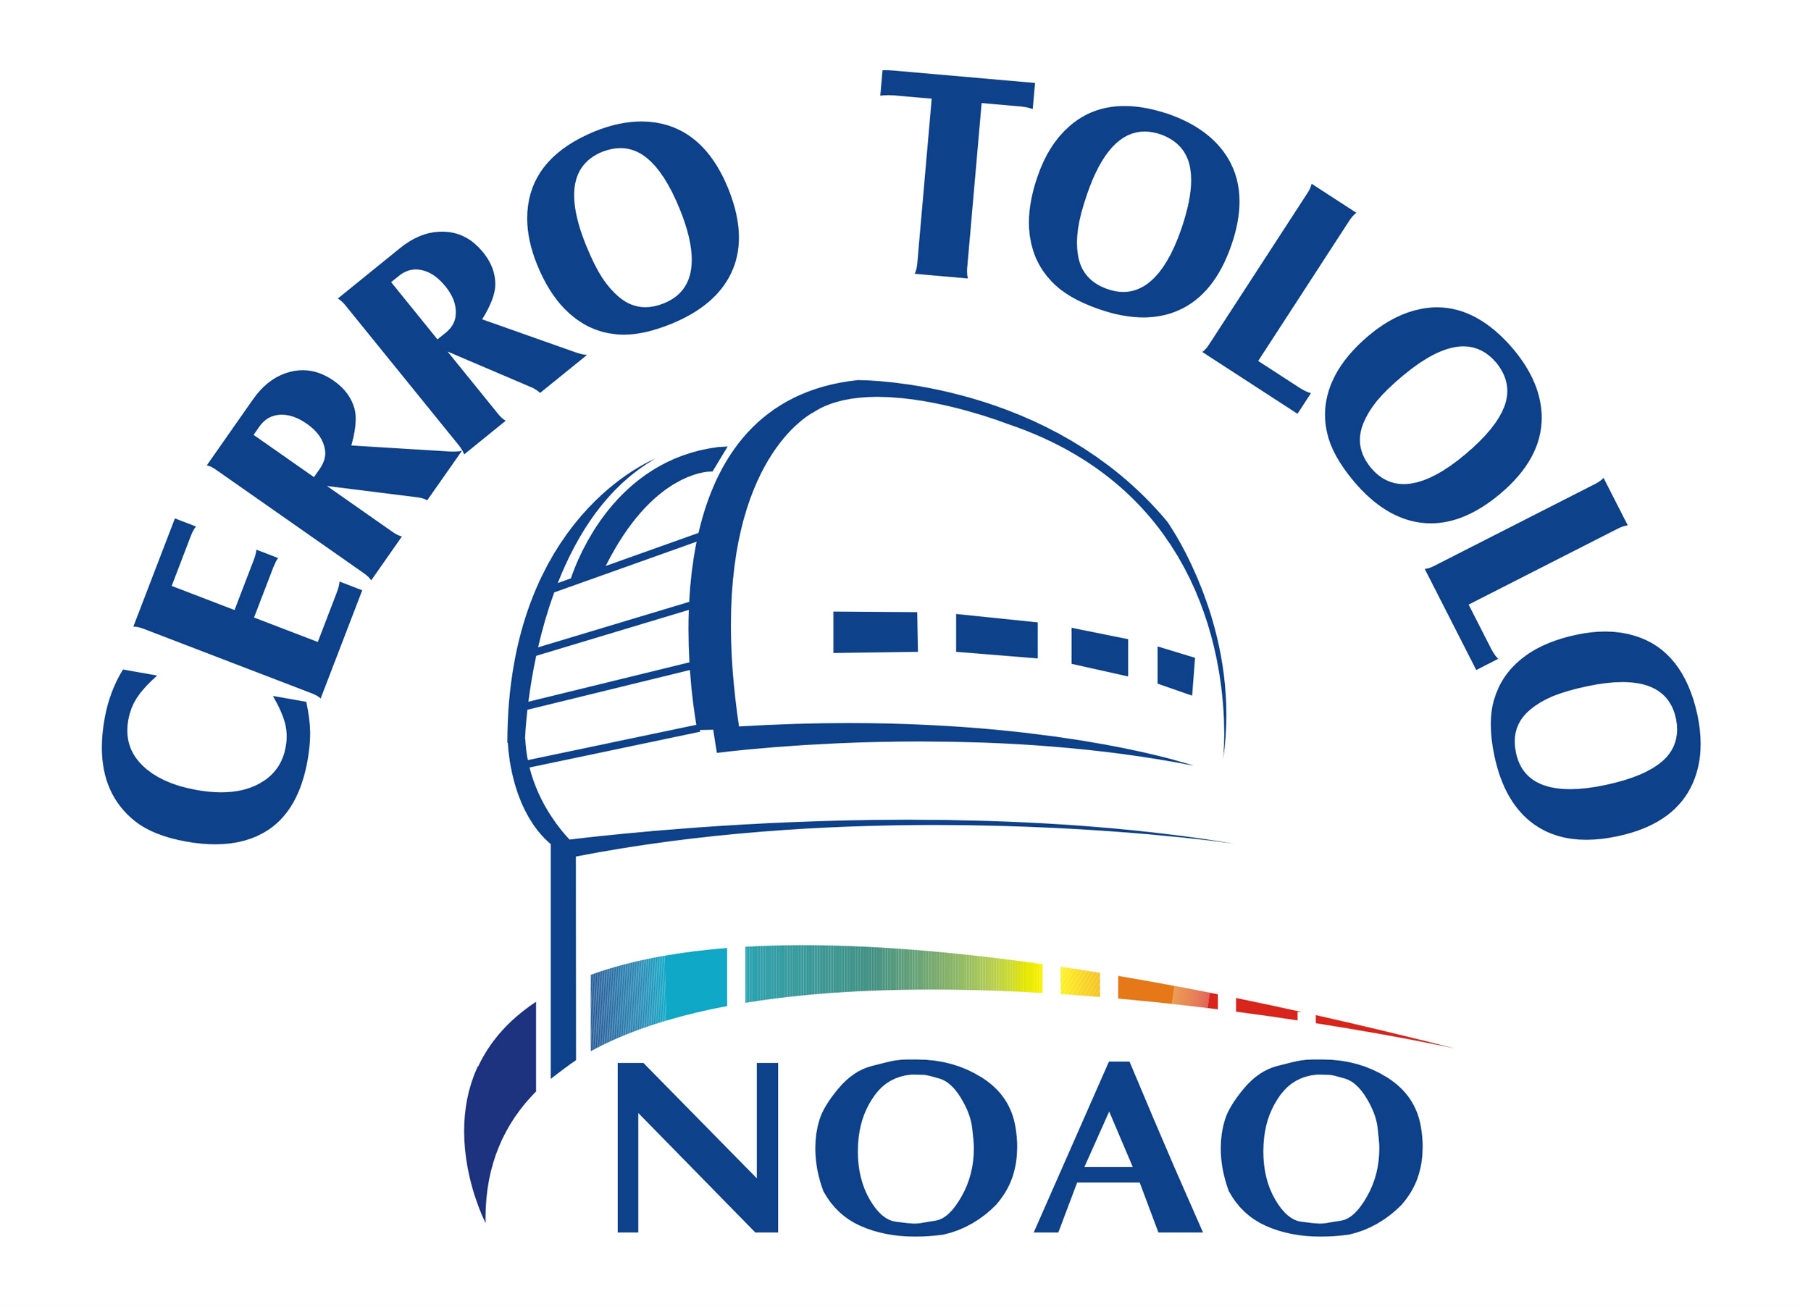 National Science Foundation's Cerro Tololo Observatory